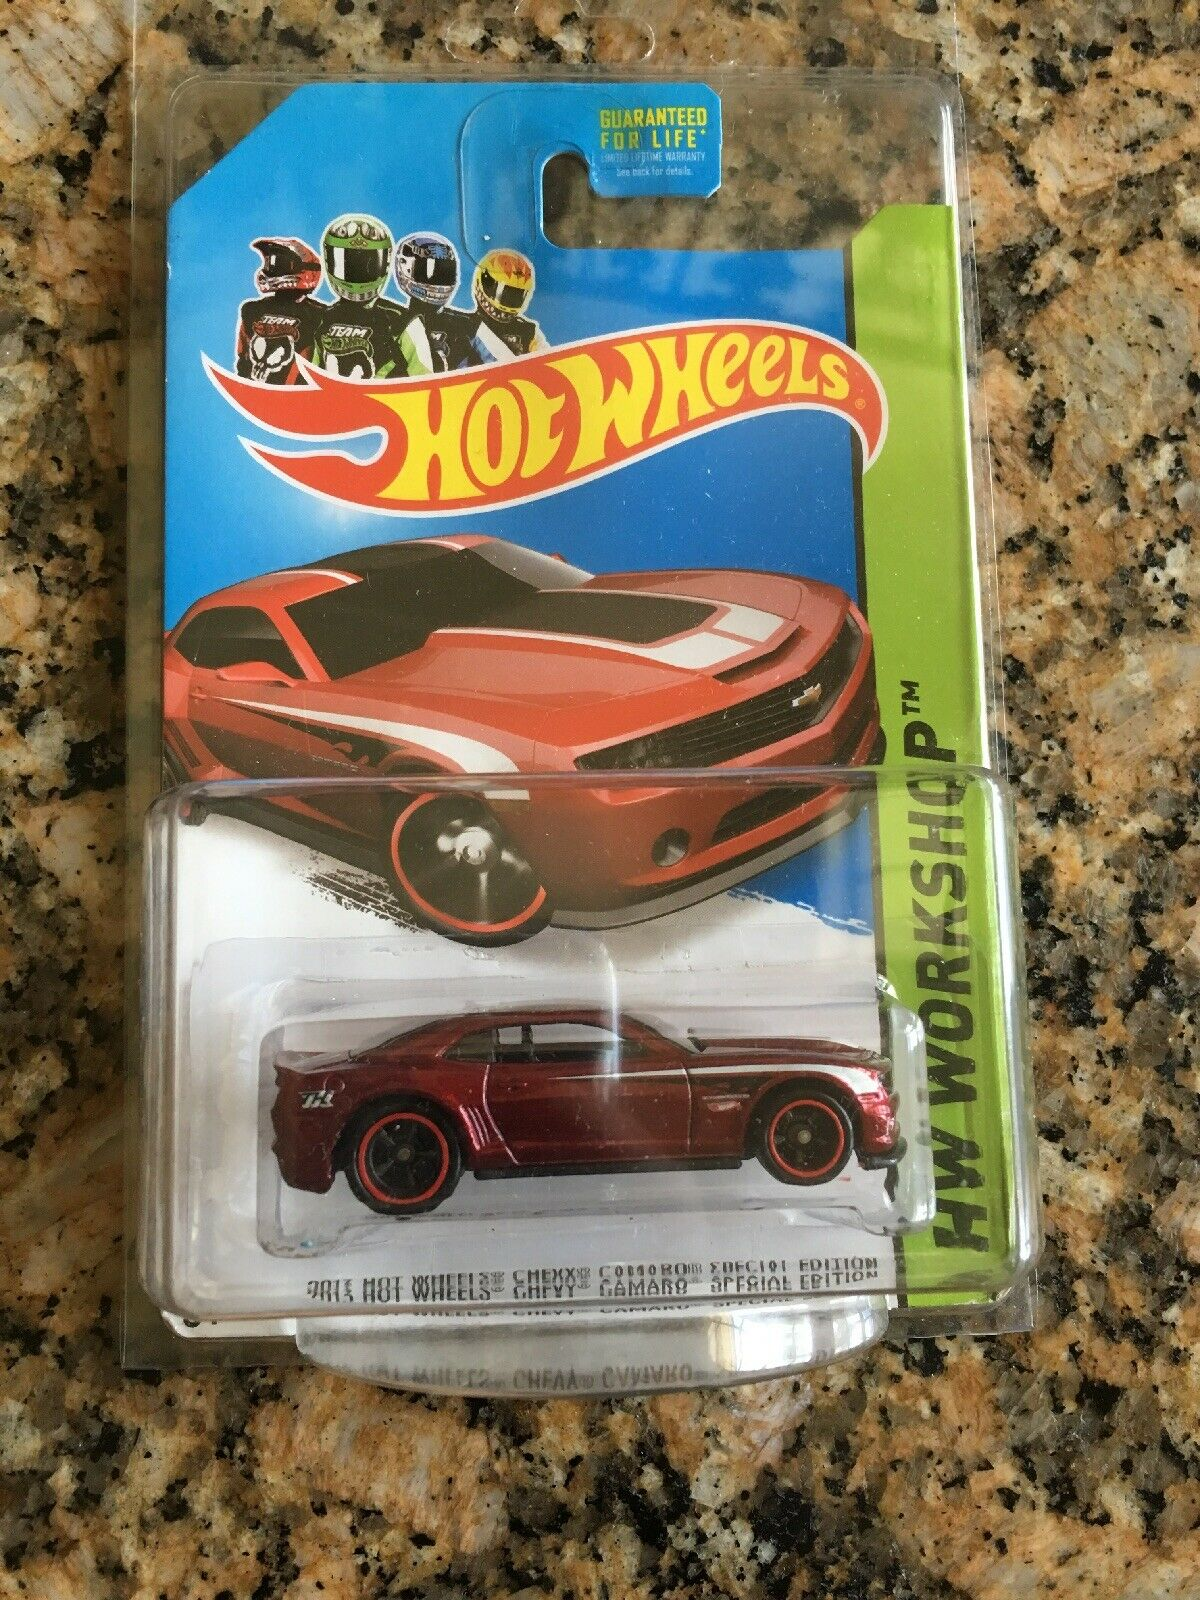 Hot Wheels Chevy Camaro Special Edition Super Treasure Hunt